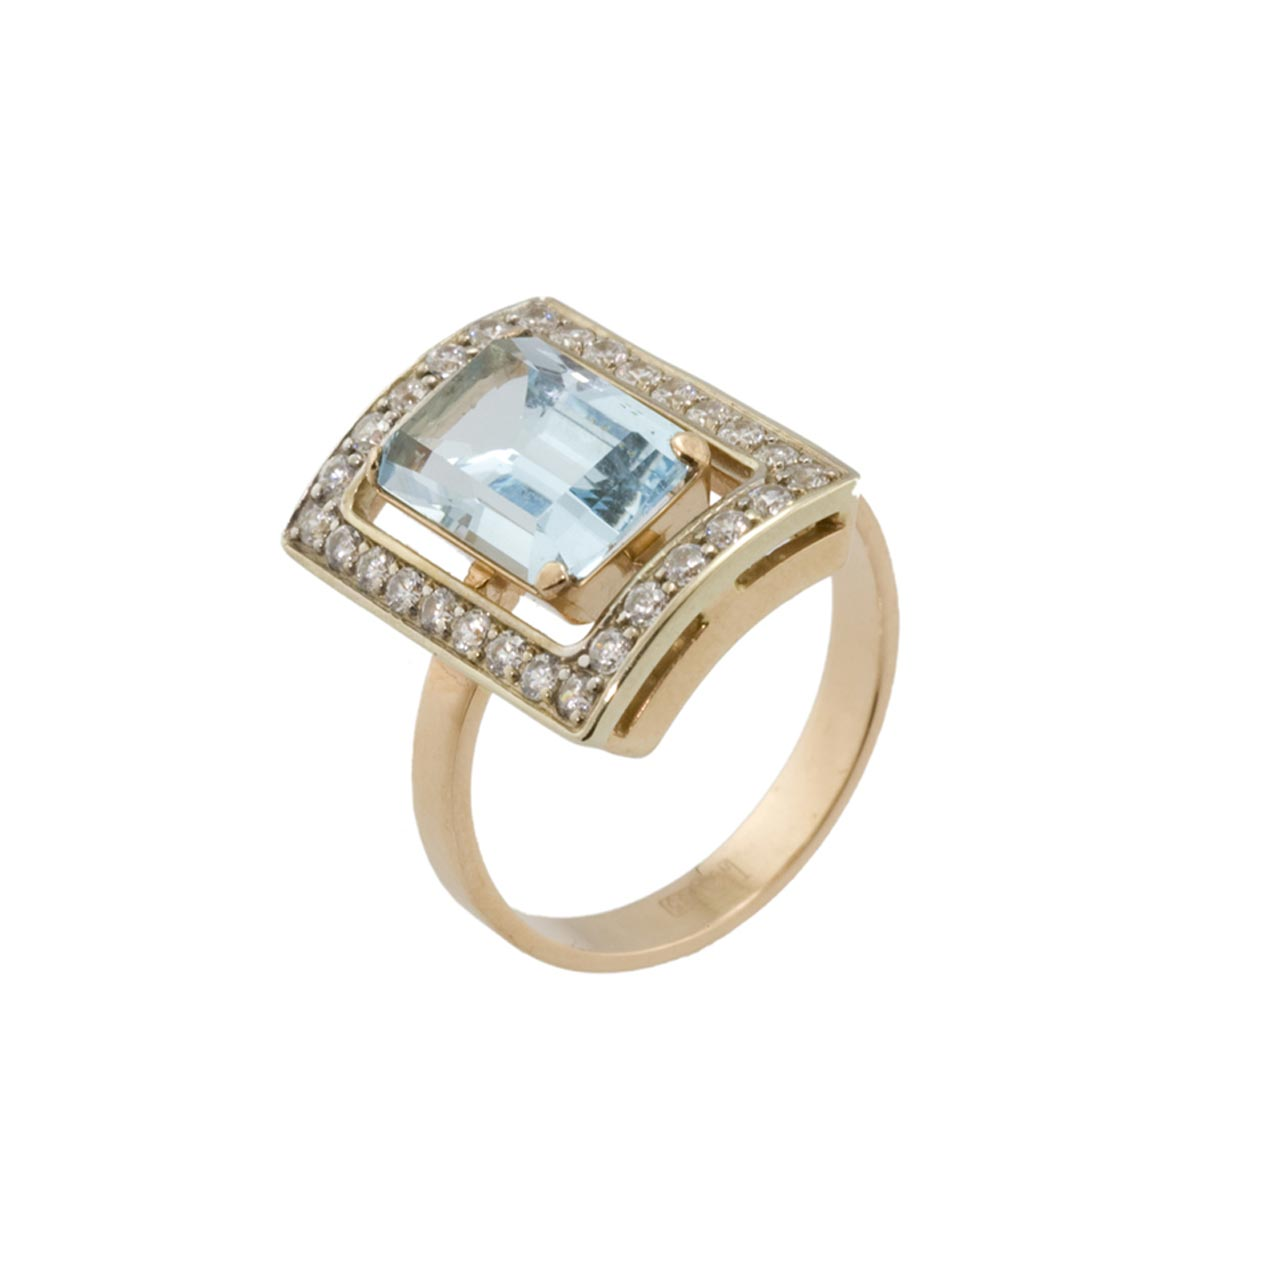 Faberge Style Blue Topaz Baguette Ring